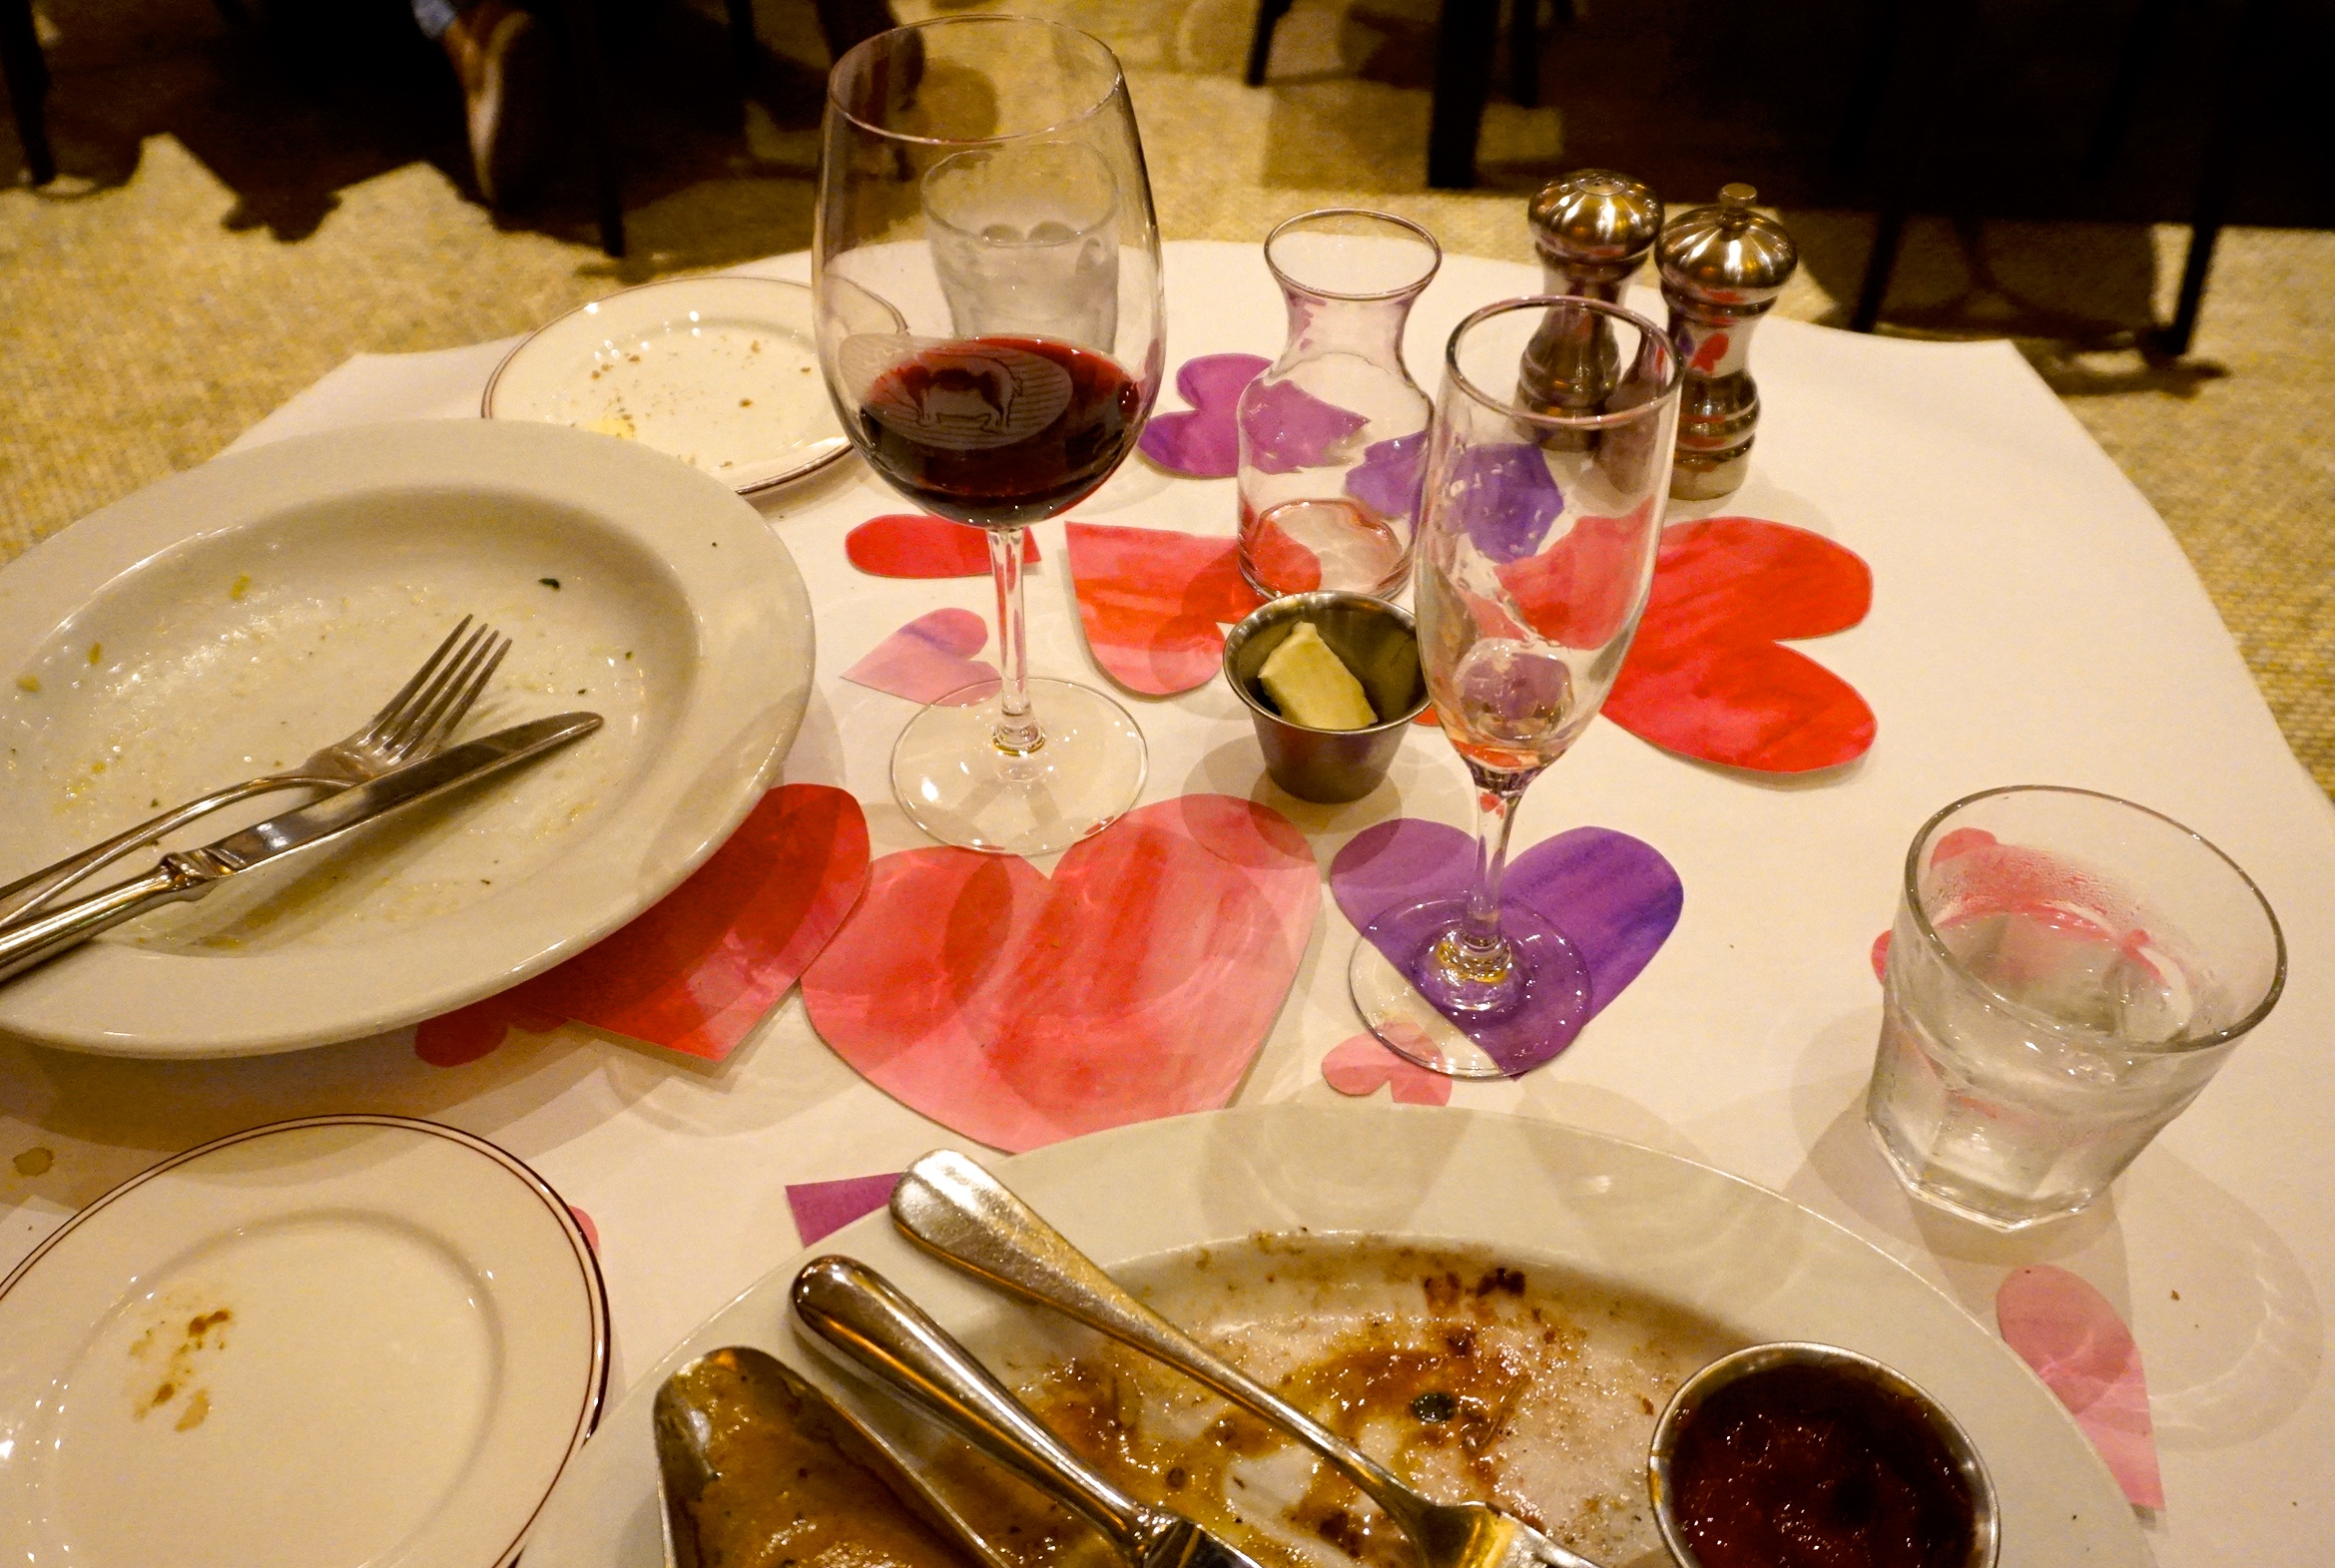 Post dinner shot. The hearts moved around a little but never 'got in the way'.